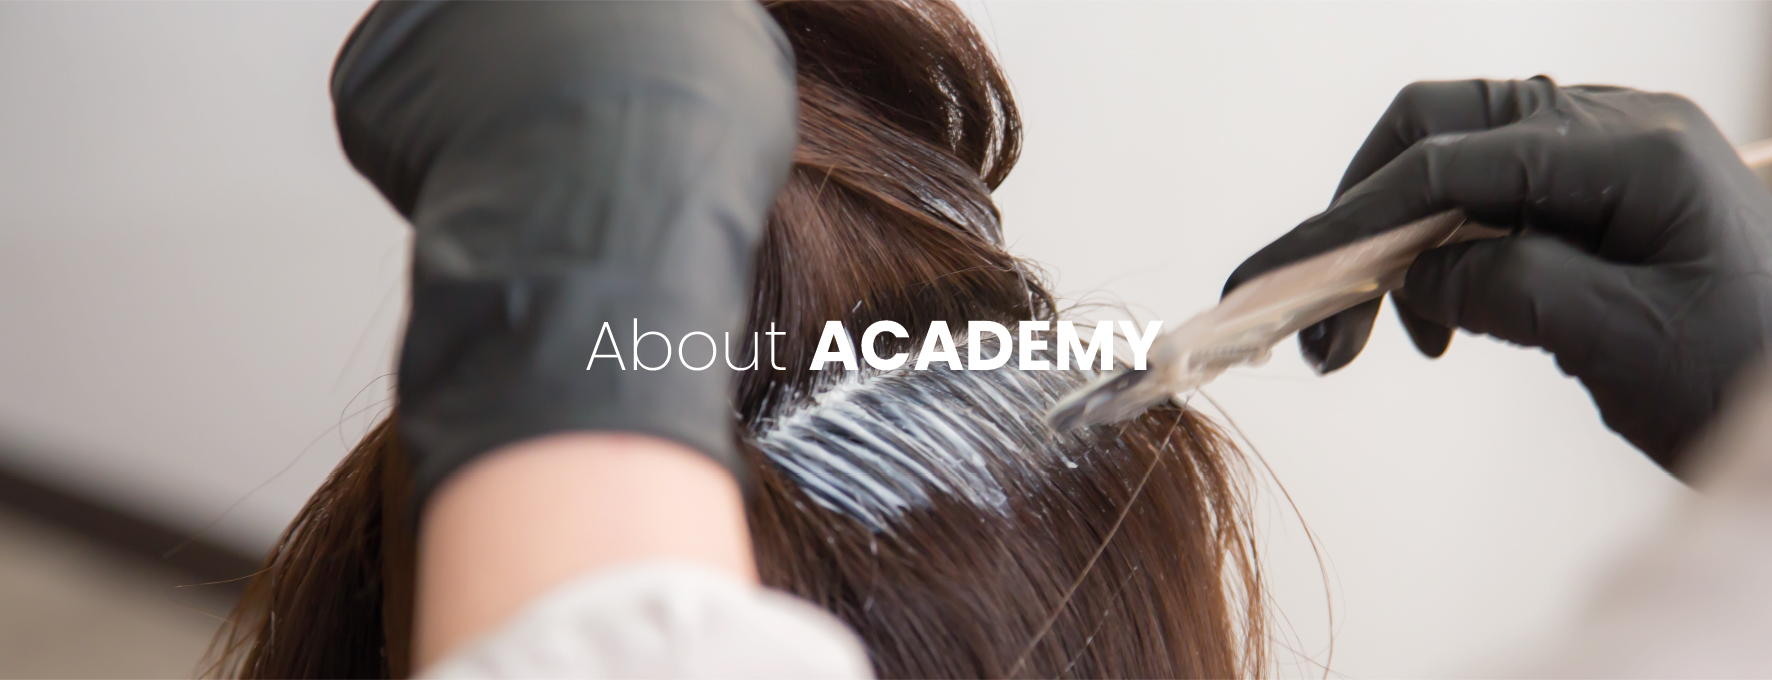 about academy